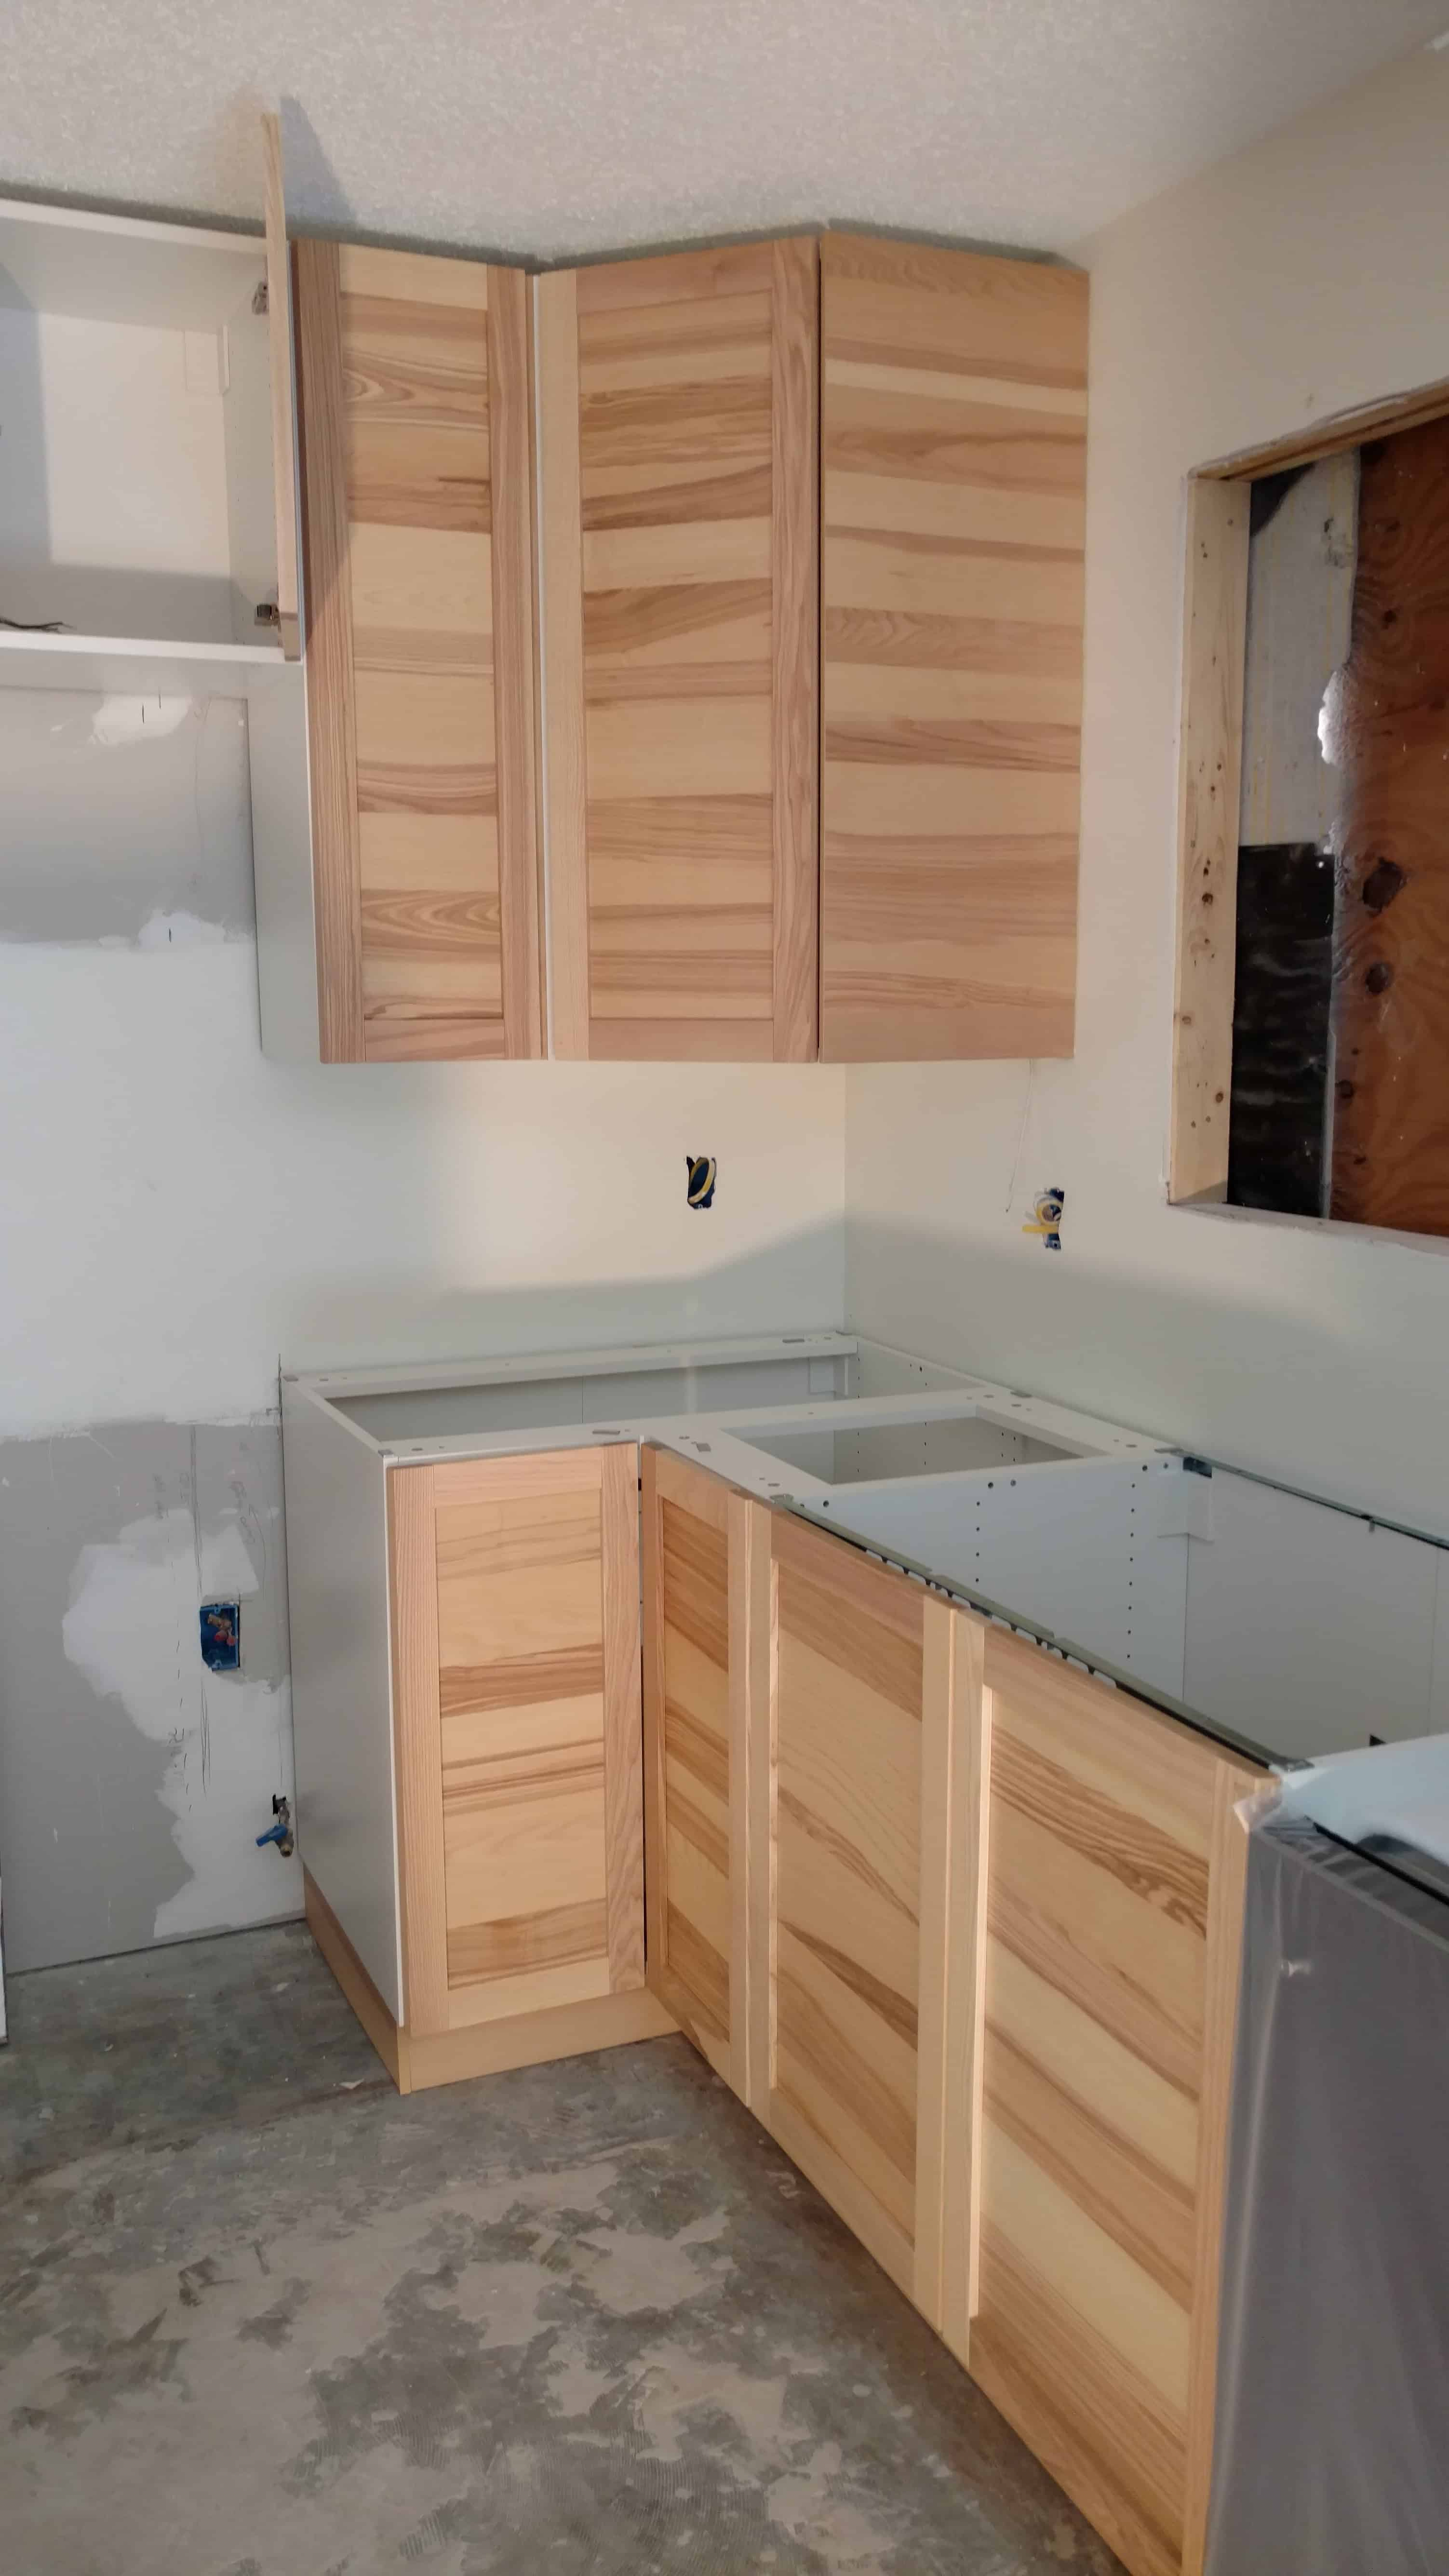 Ikea installation service gainesville fl for Ikea kitchen cabinets assemble yourself